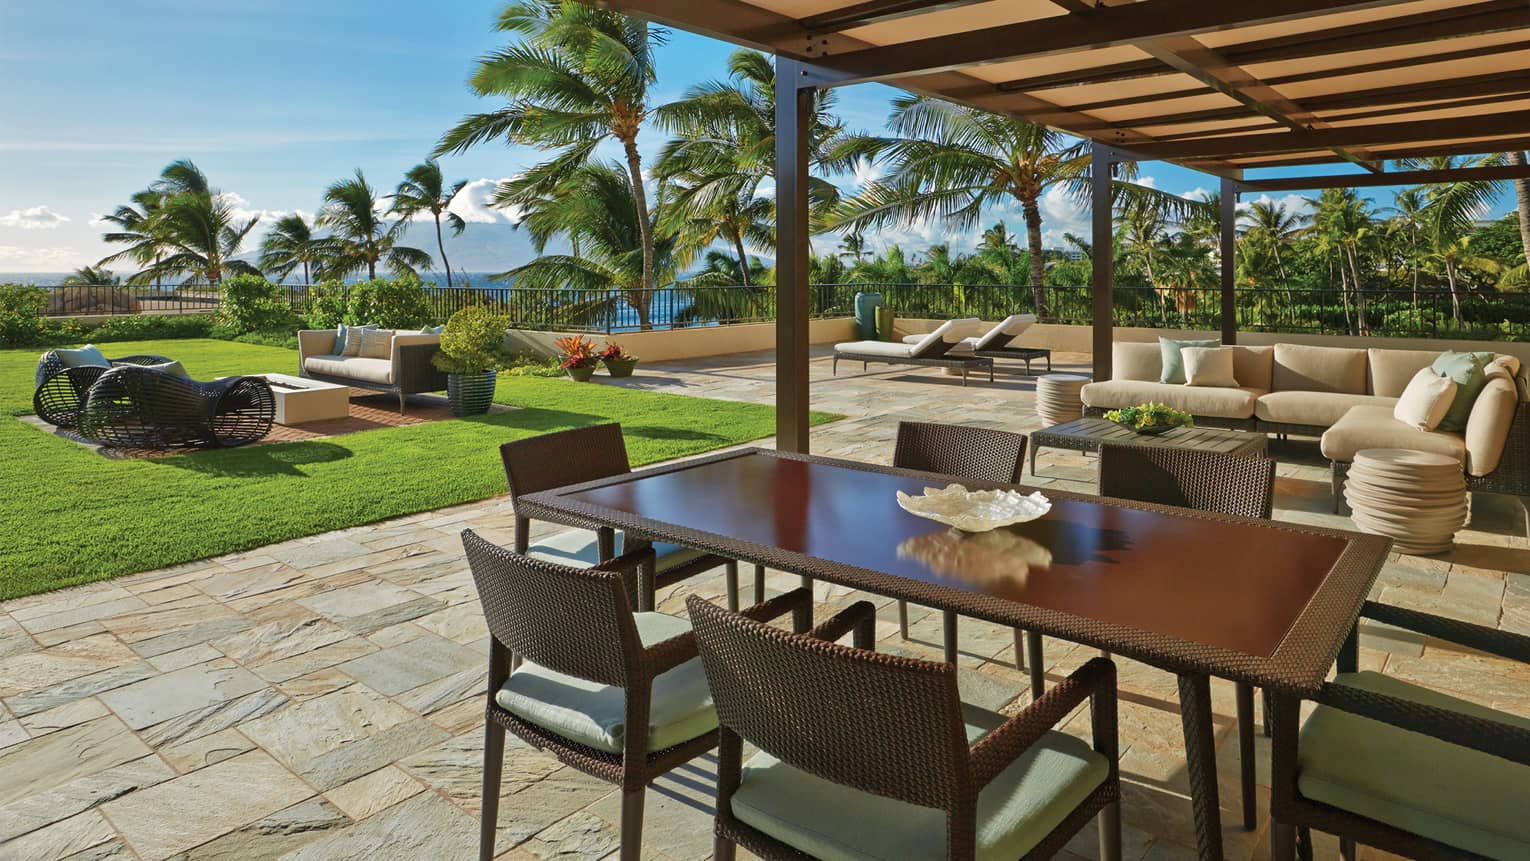 Lokelani Presidential Three-Bedroom Suite sunny outdoor patio with sofas and wicker dining table